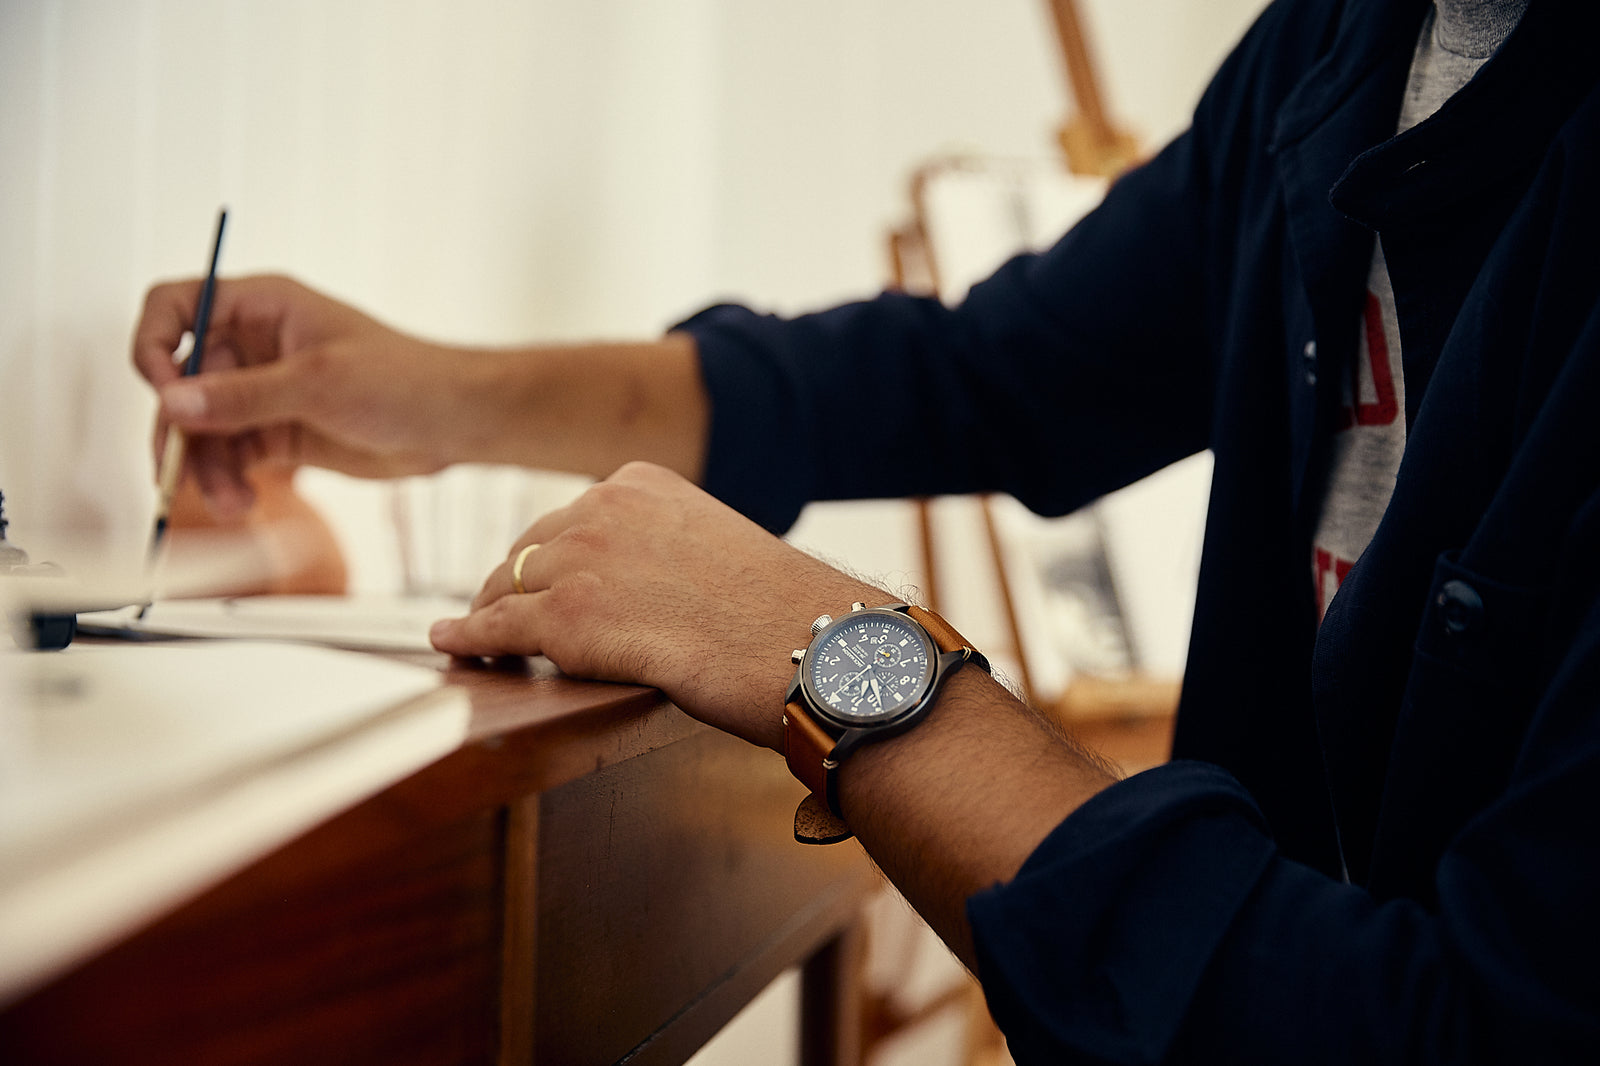 A man writing while wearing the chic aviator chronograph watch from Jack Mason